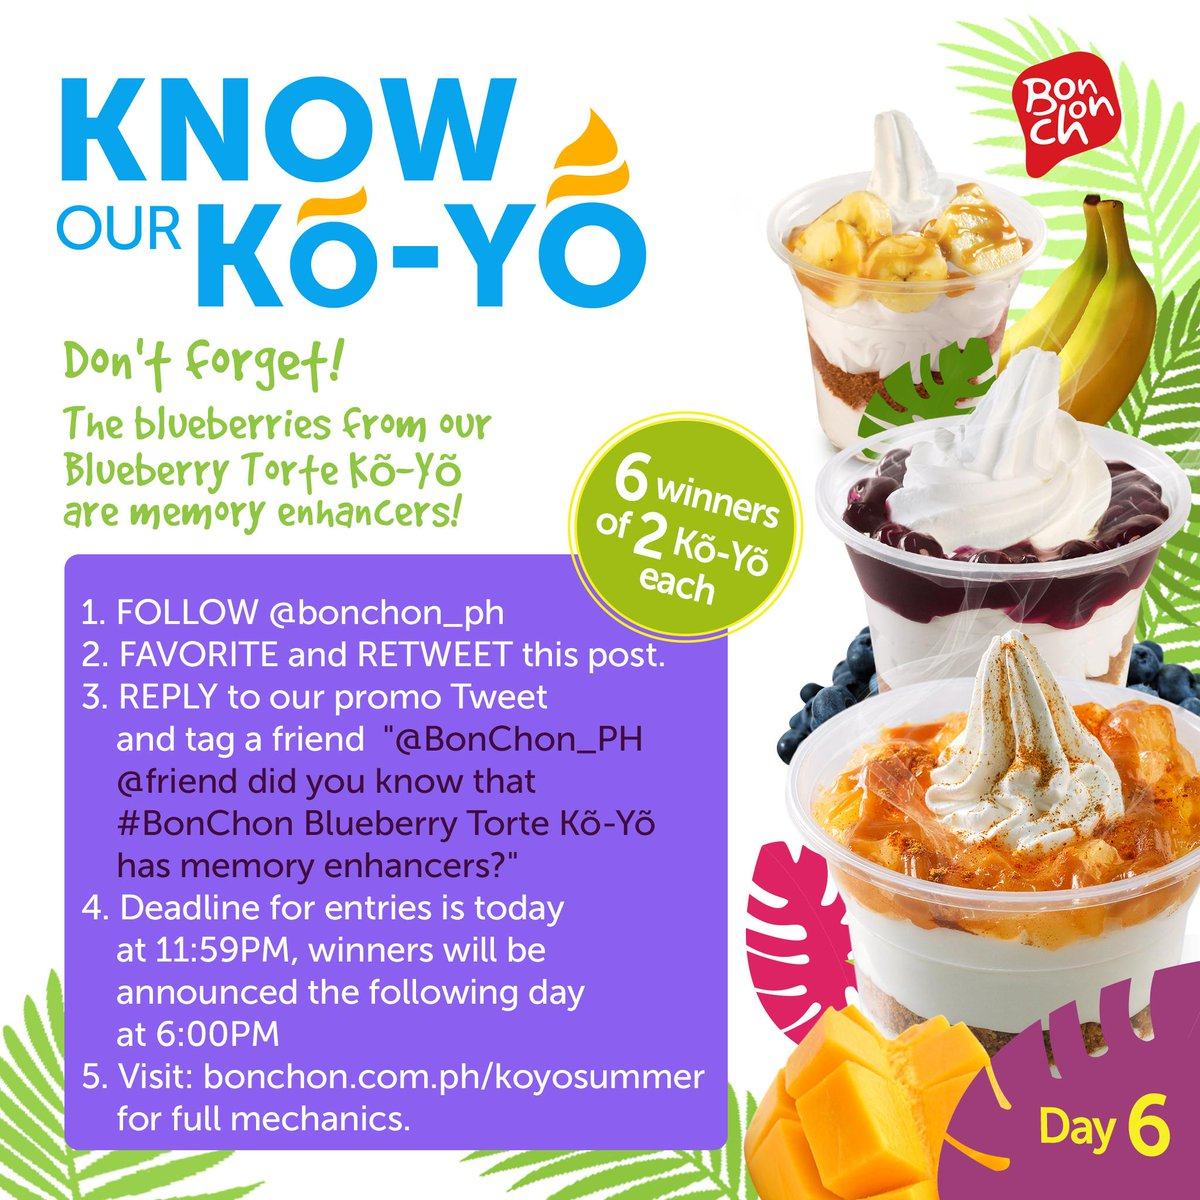 It's Day 6, here's something cool for everyone! Check out http://t.co/htpdgzrGx7 for full mechanics! #BonChon http://t.co/ciOZUOCFjr